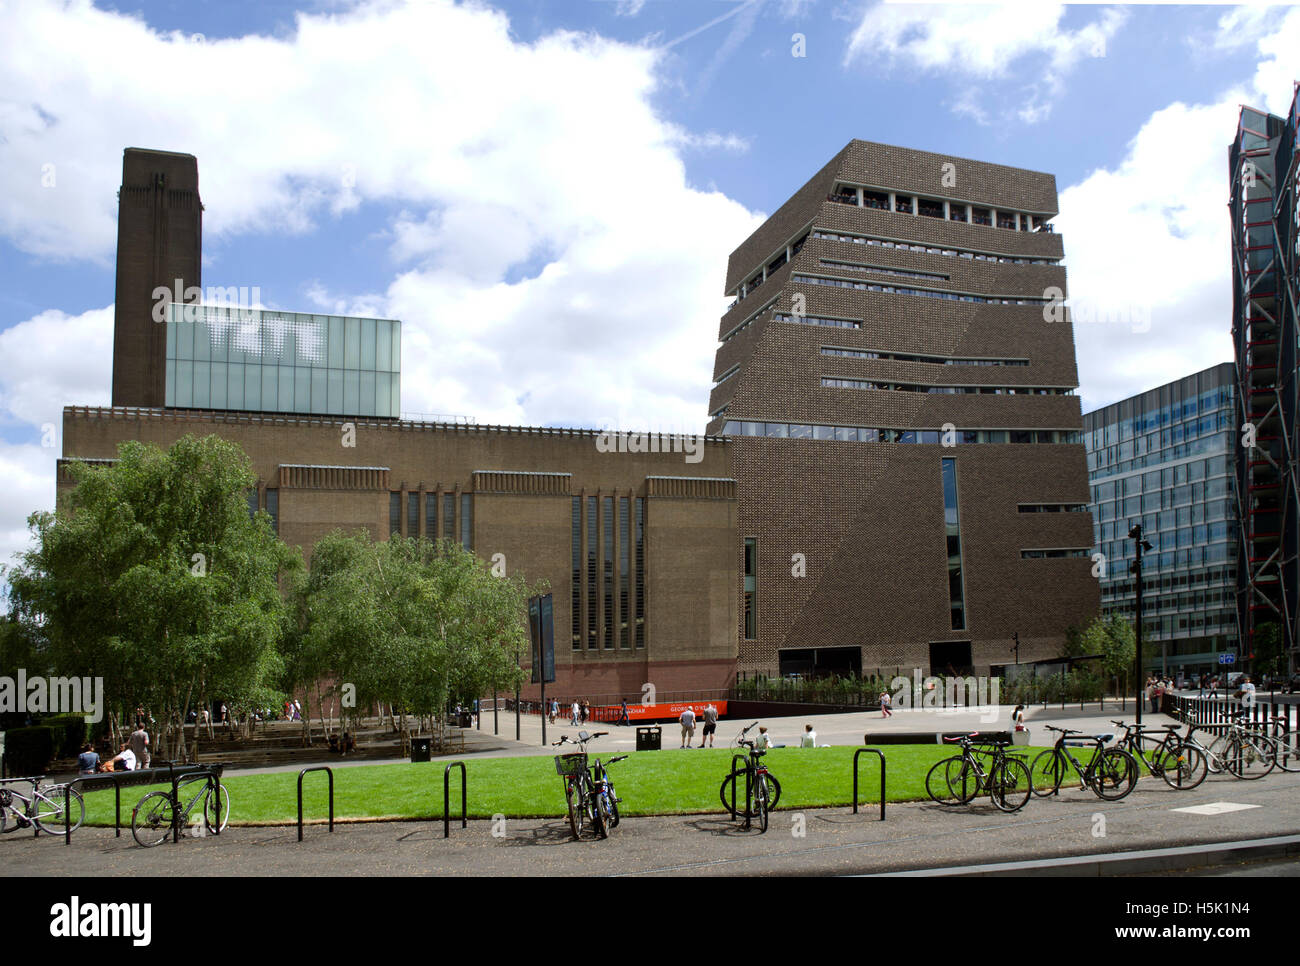 New extension to Tate Modern by archutects Herzog & de Meuron also refered to as Switch House - Stock Image